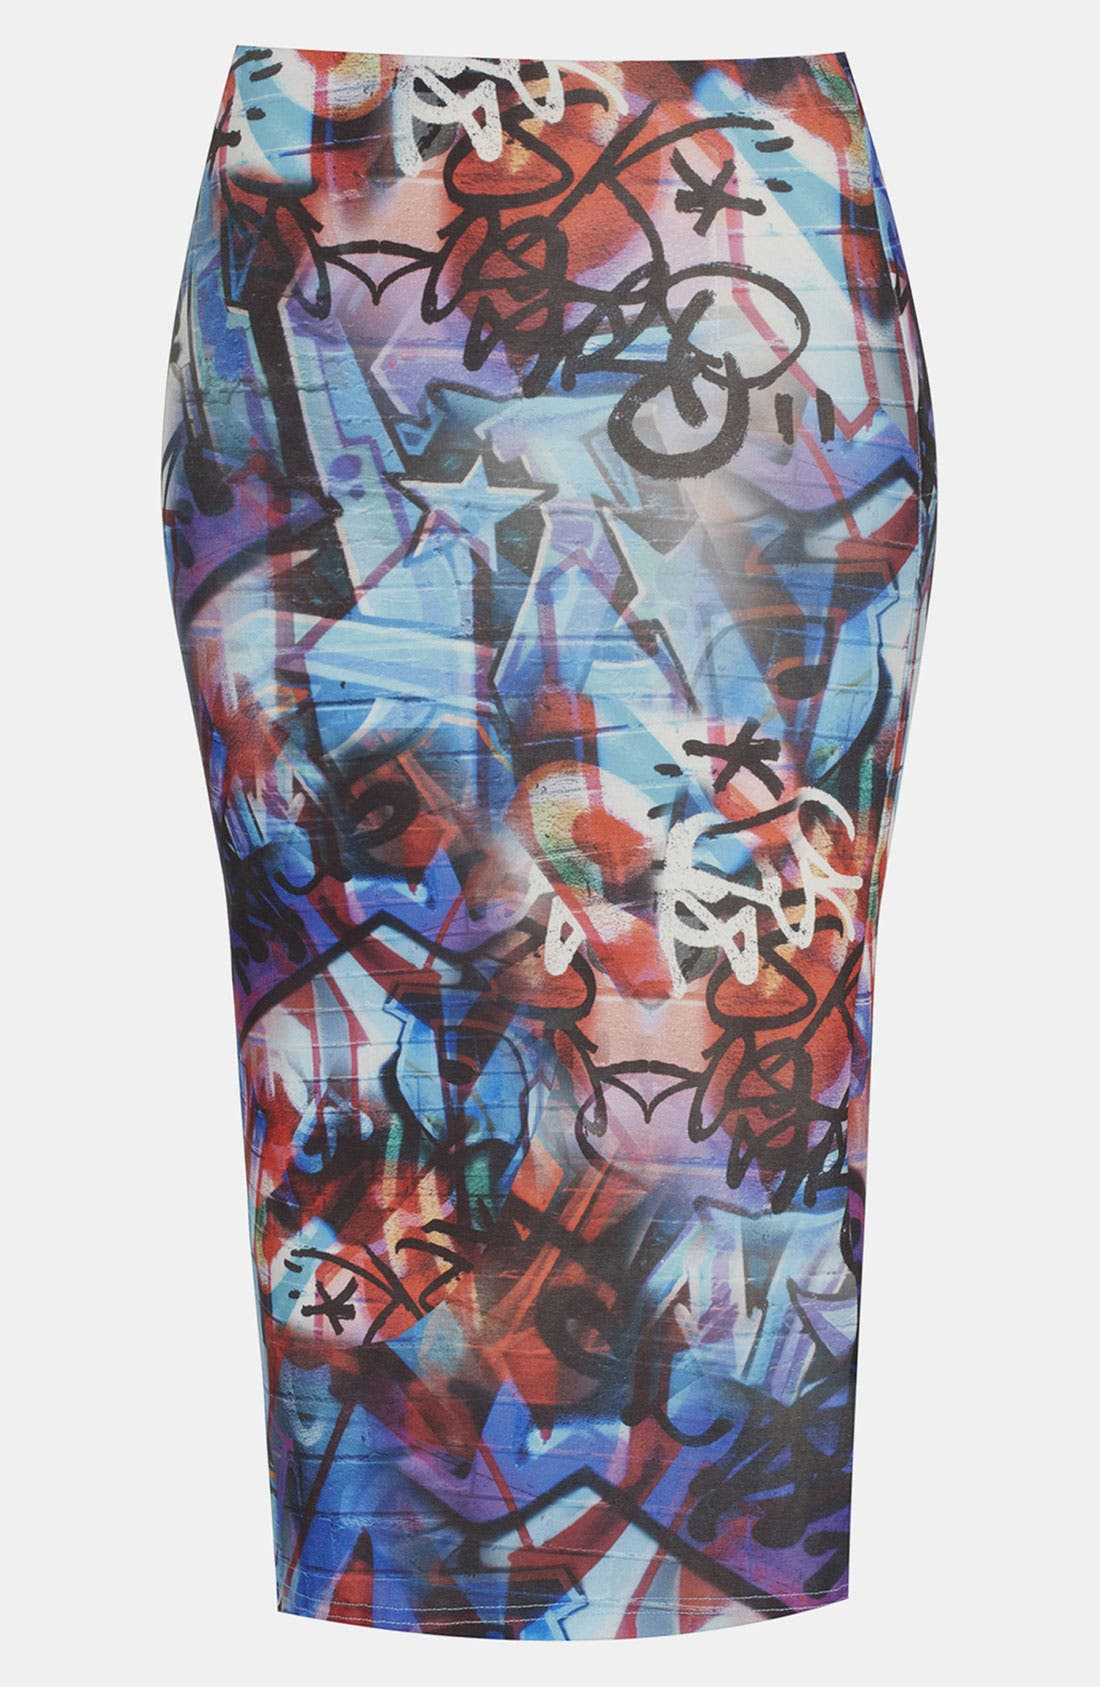 Alternate Image 1 Selected - Topshop 'Graffiti' Print Midi Skirt